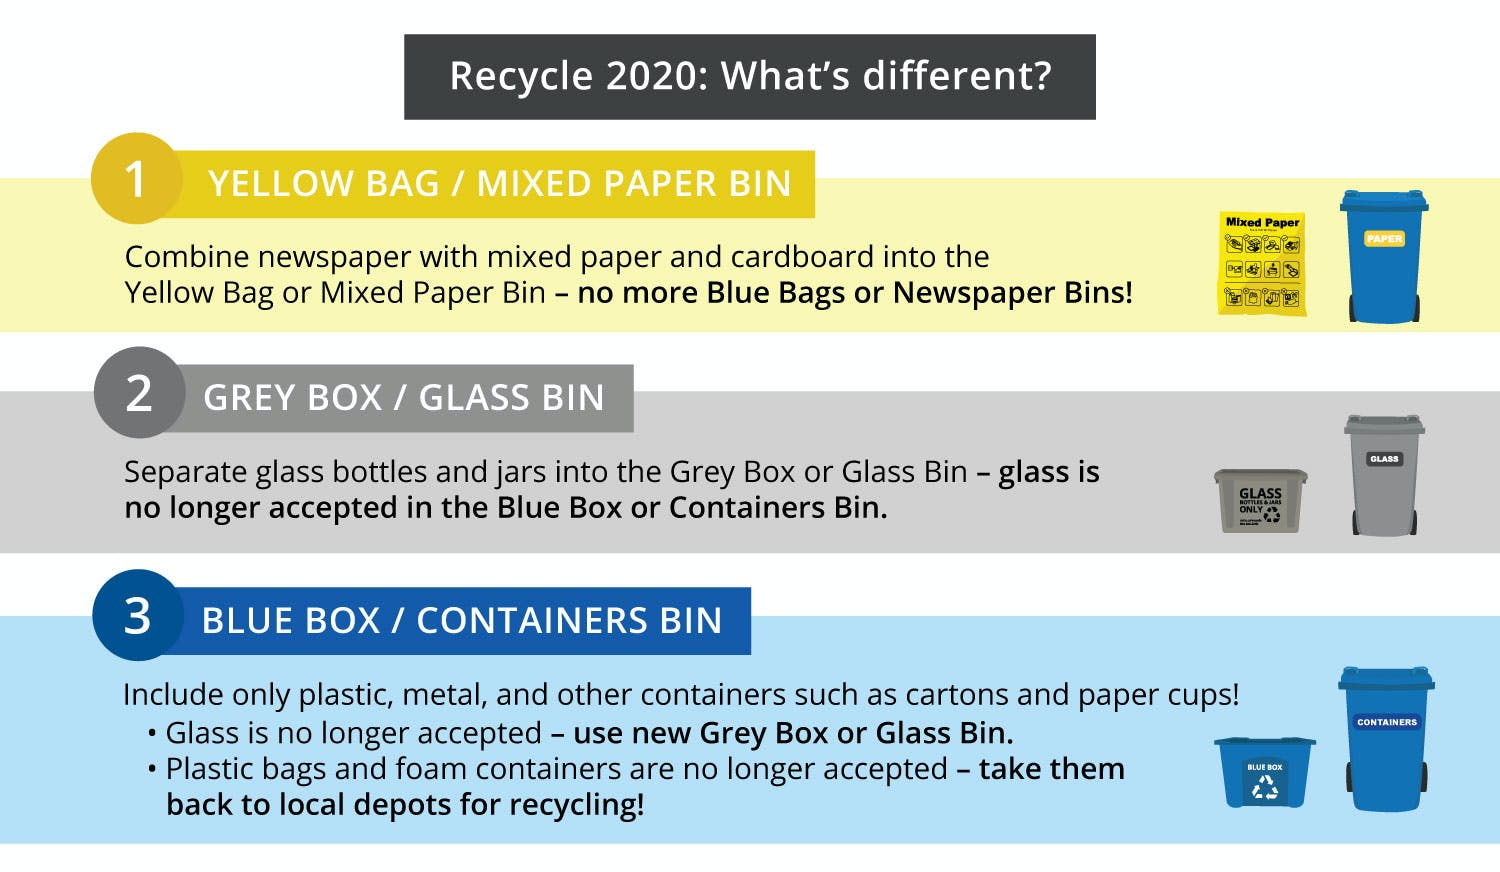 Recycle 2020: What's different?